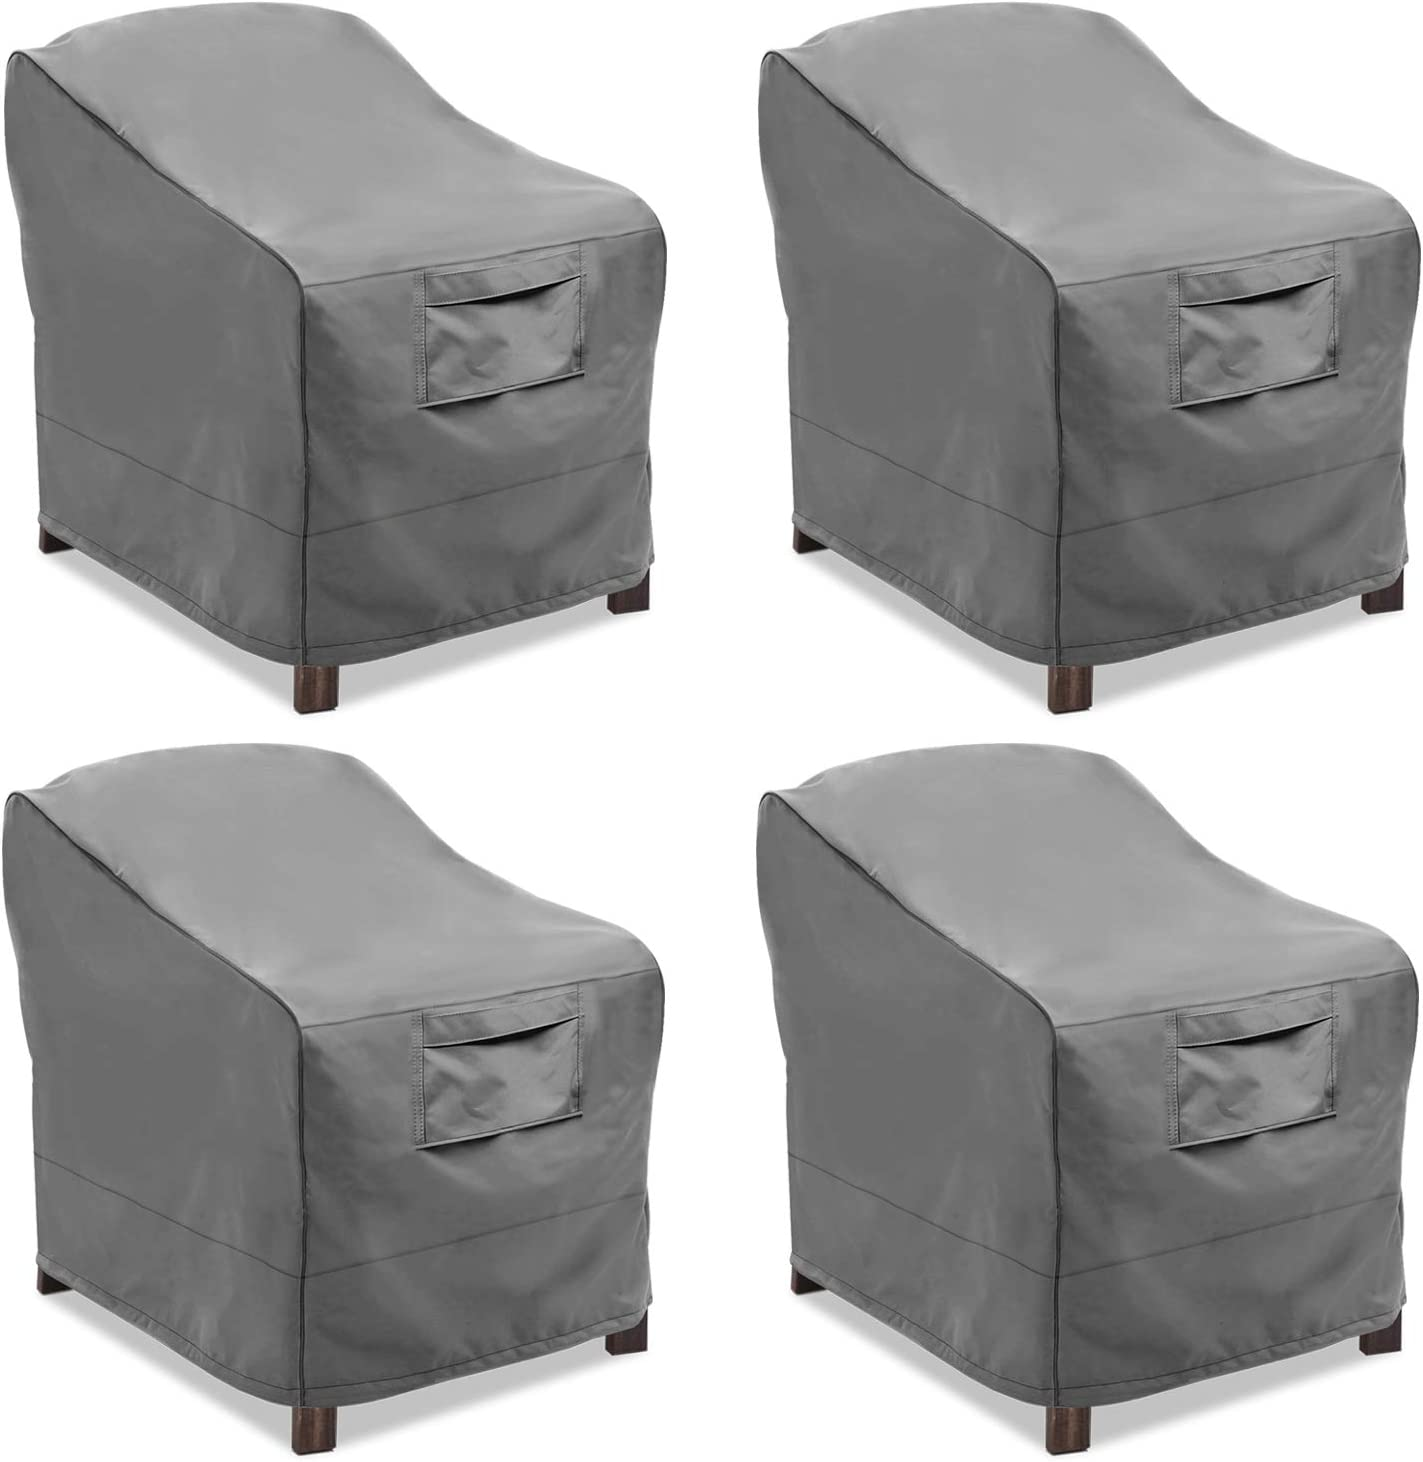 Vailge Patio 百貨店 Chair Covers Lounge Deep Cover 送料無料 一部地域を除く Seat Duty an Heavy